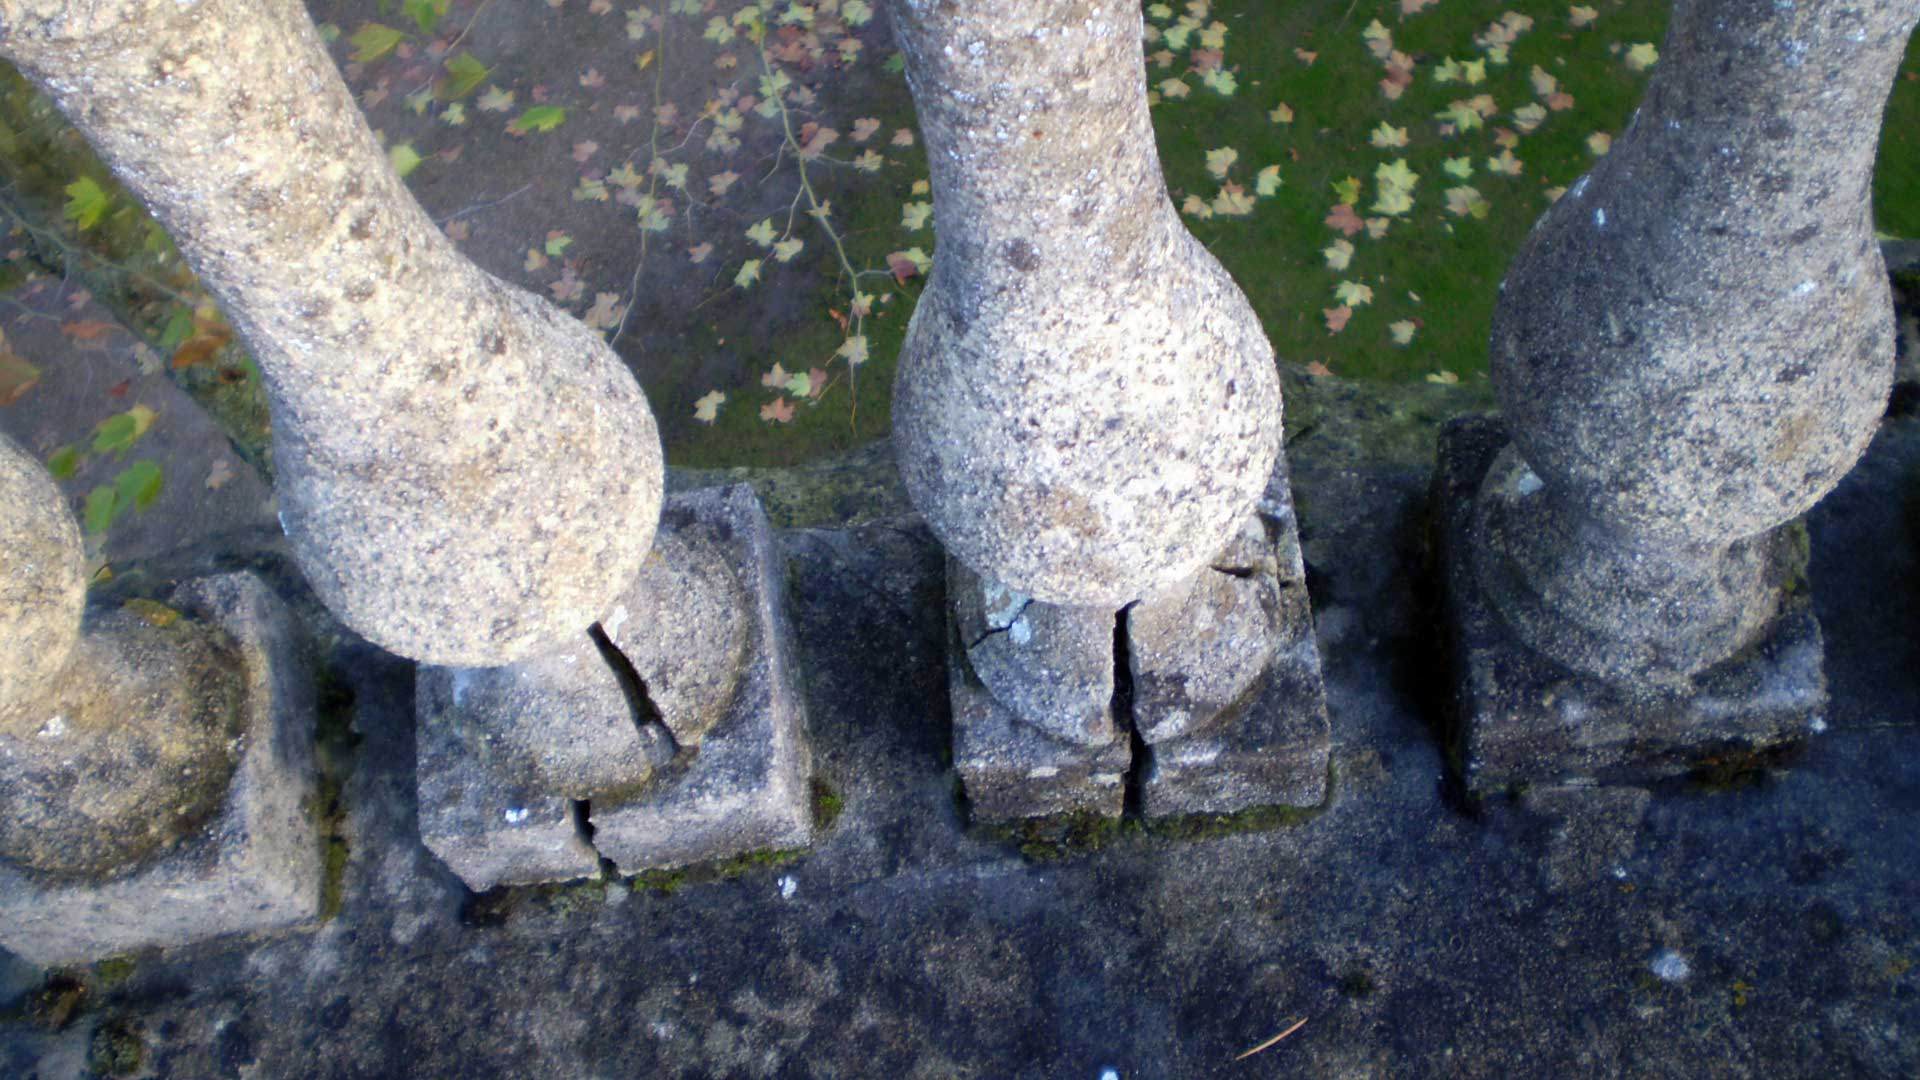 Damaged Balustrades on the Roof of the Nave